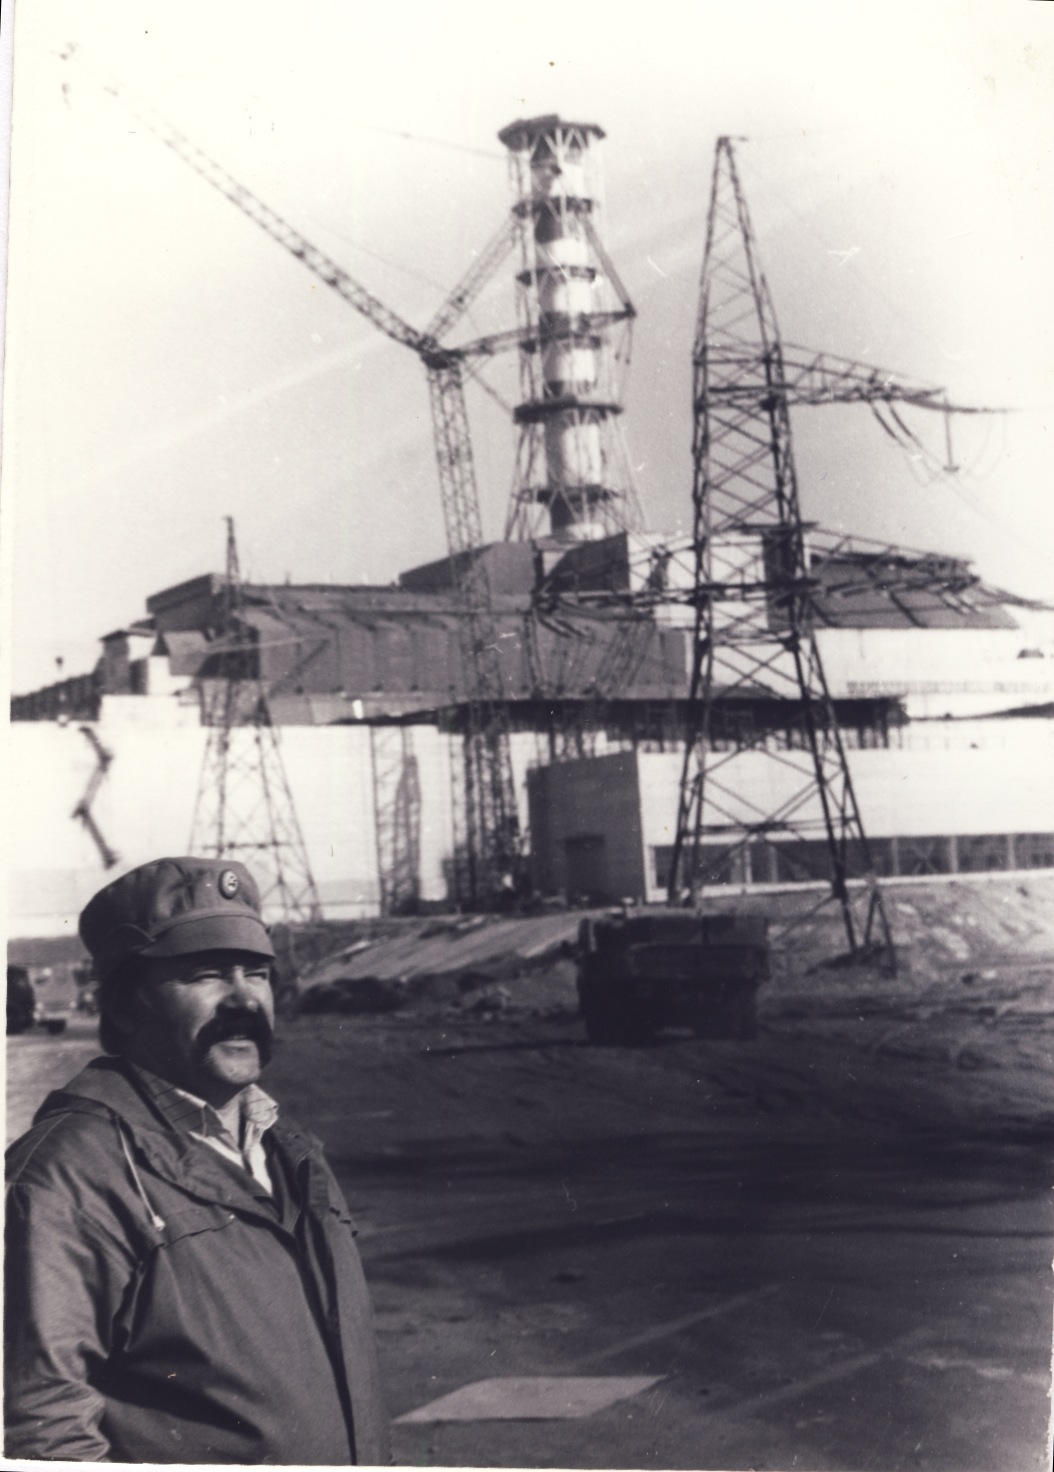 Anatolii in Chernobyl in the late 80s